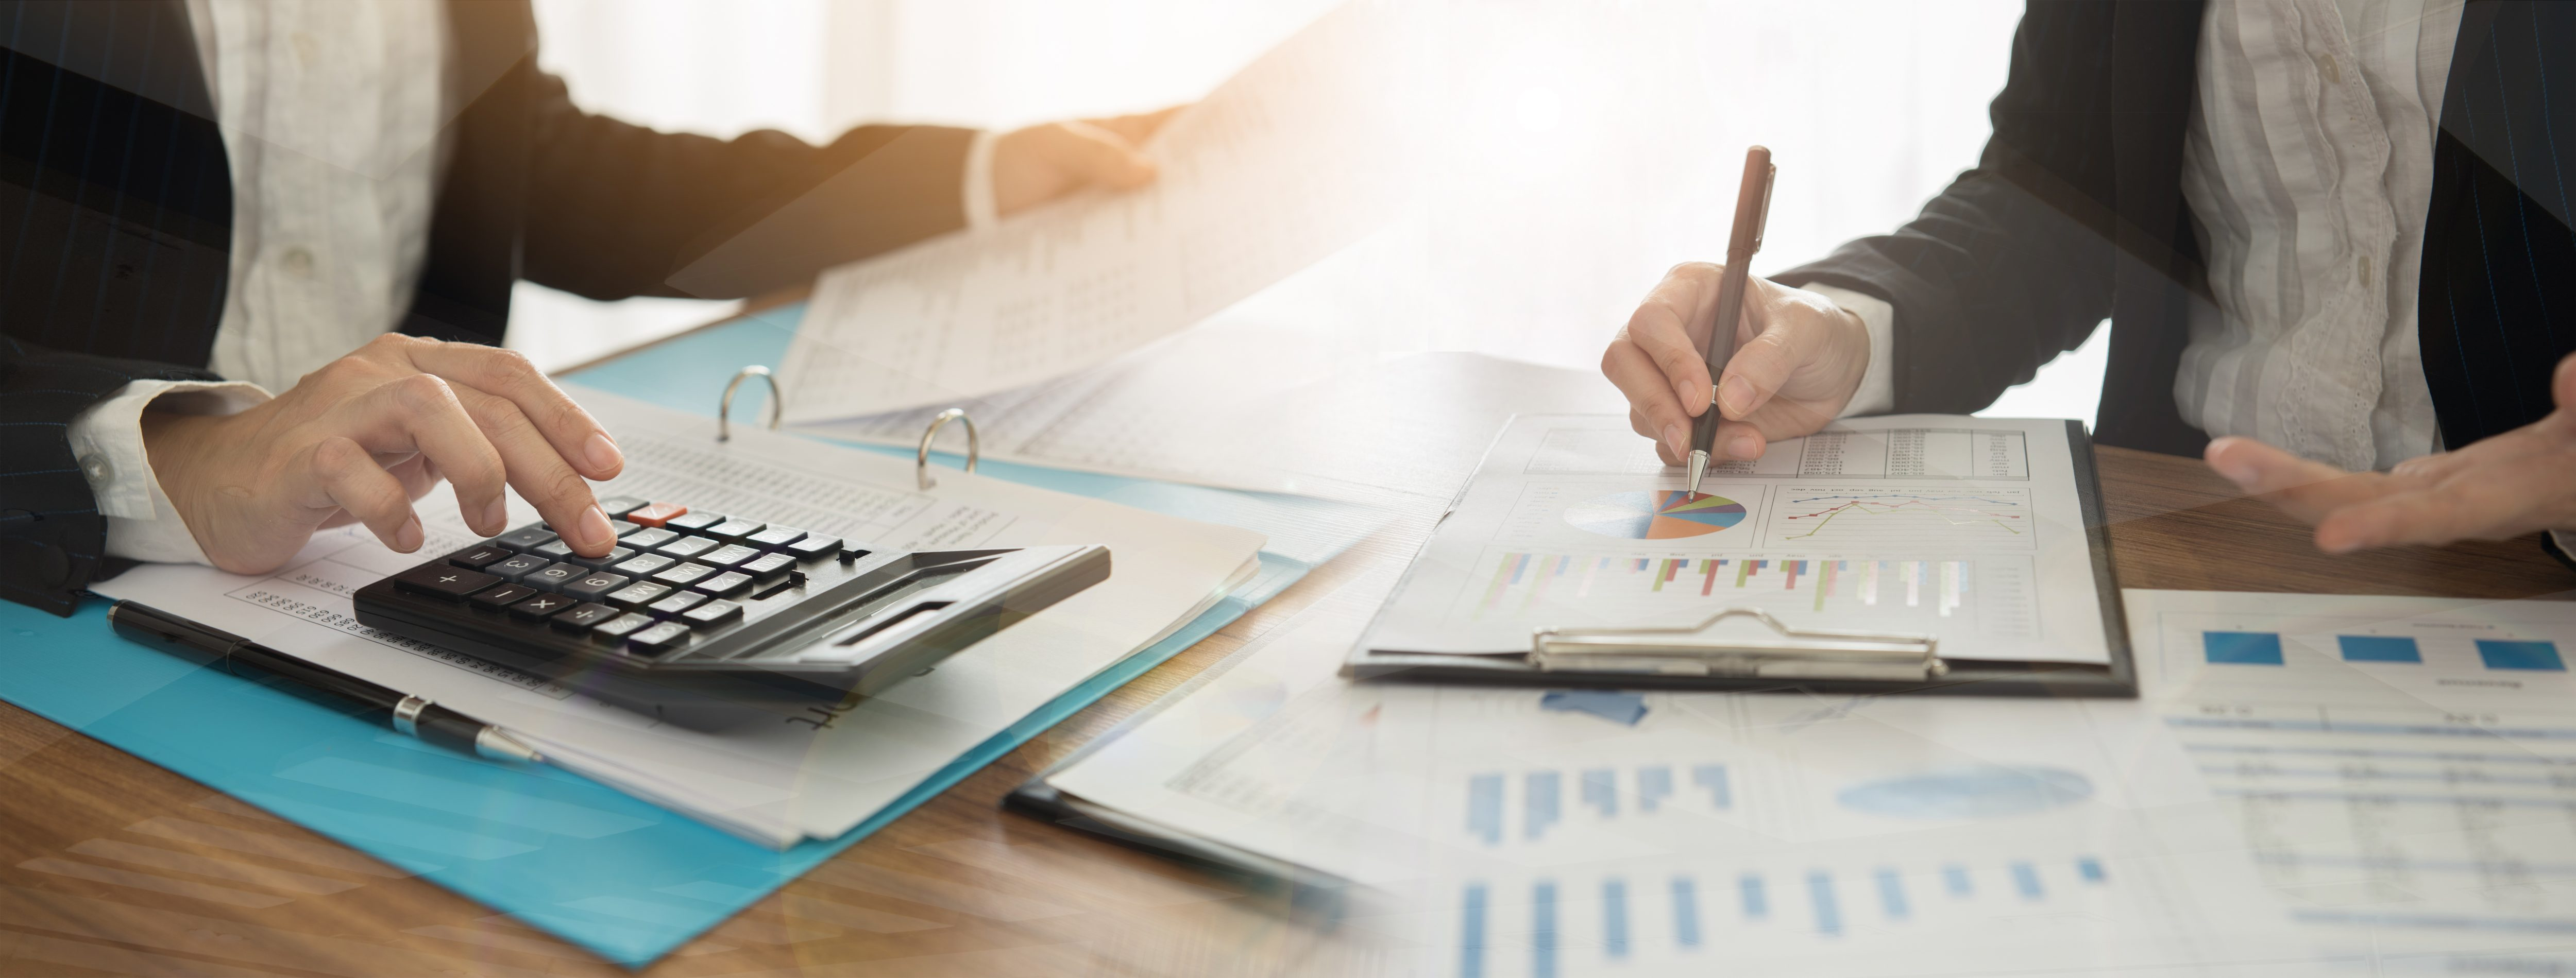 MBA in Accounting: One student's journey to becoming a CPA